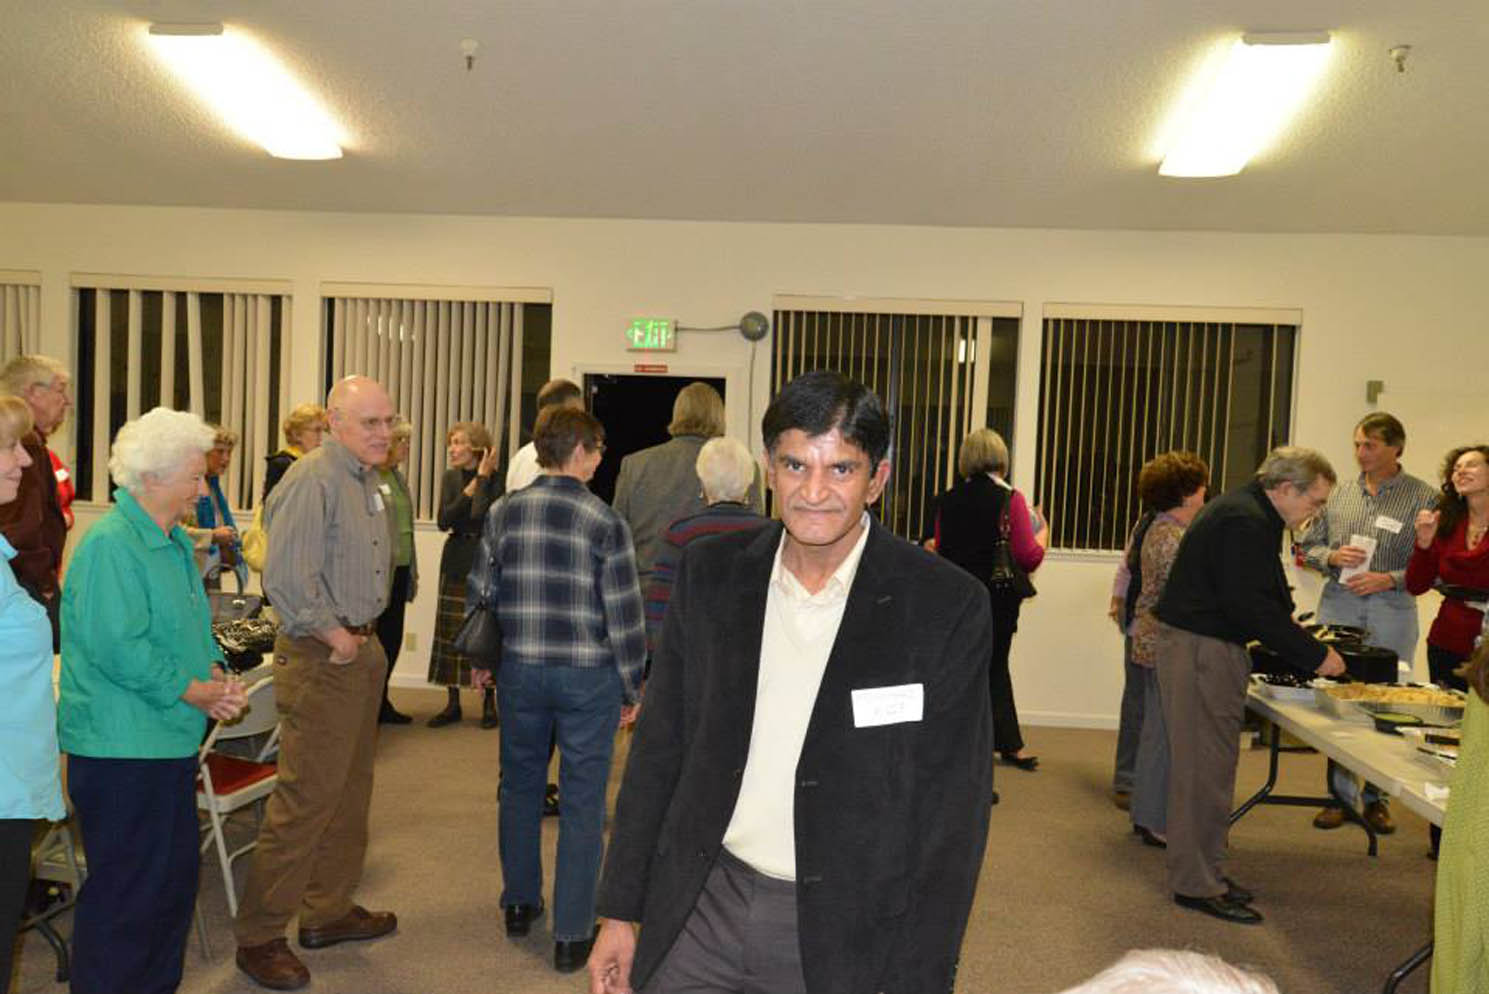 AMV interfaith 1-19-2014 ElDorado Hills (16)